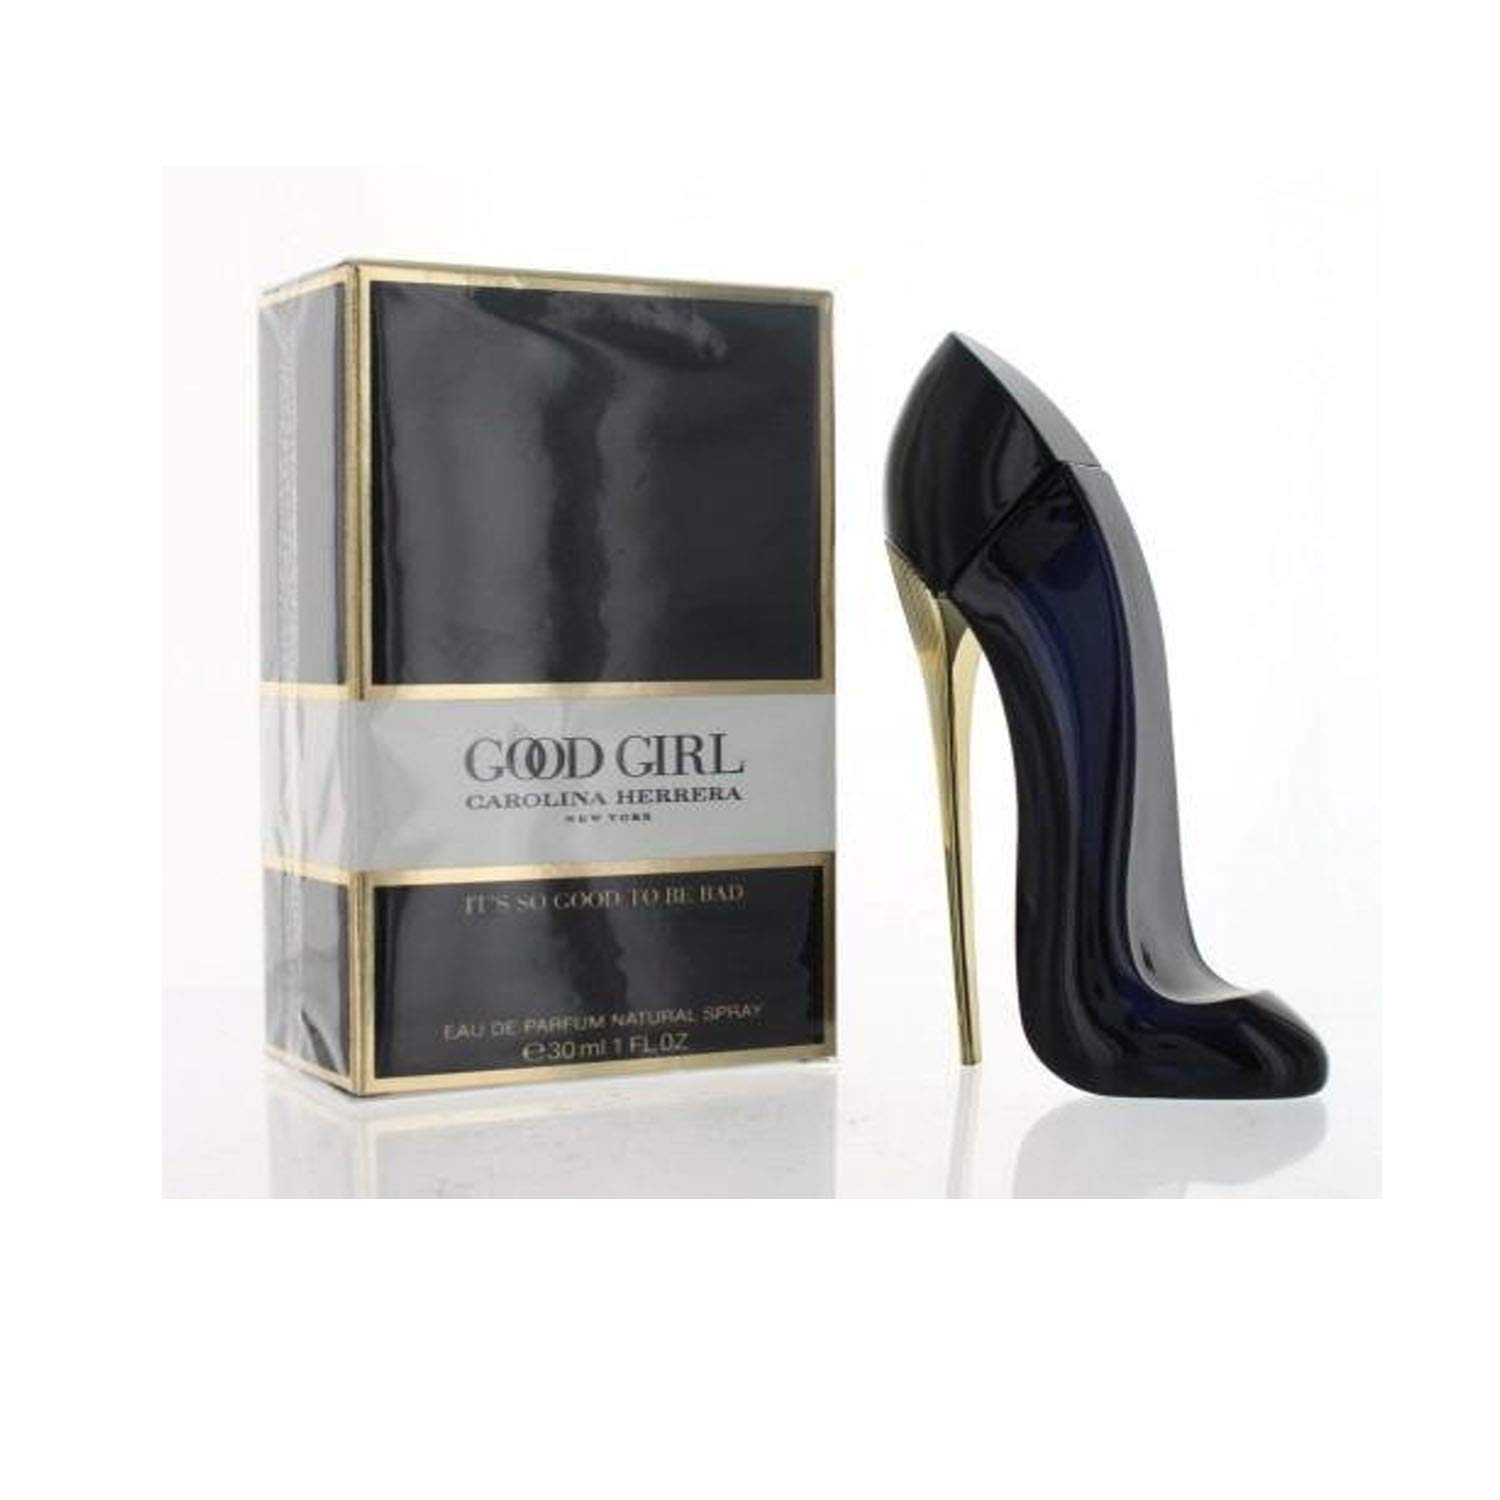 3118cd3914d7 Amazon.com  CAROLINA HERRERA Good Girl Eau de Perfume Spray